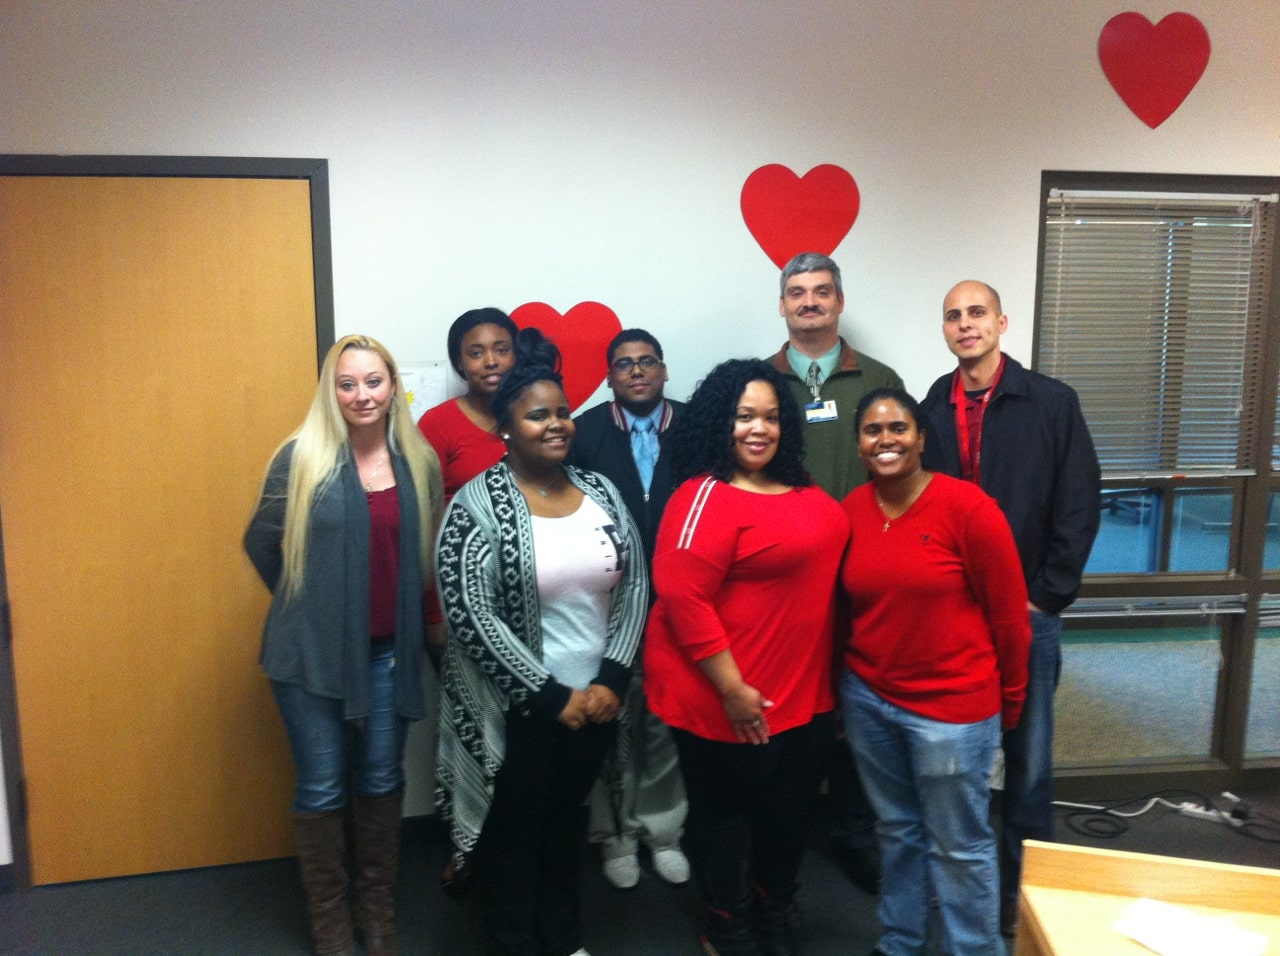 Tampa Campus Student Government Hosts Their 1st Annual Poetry Reading